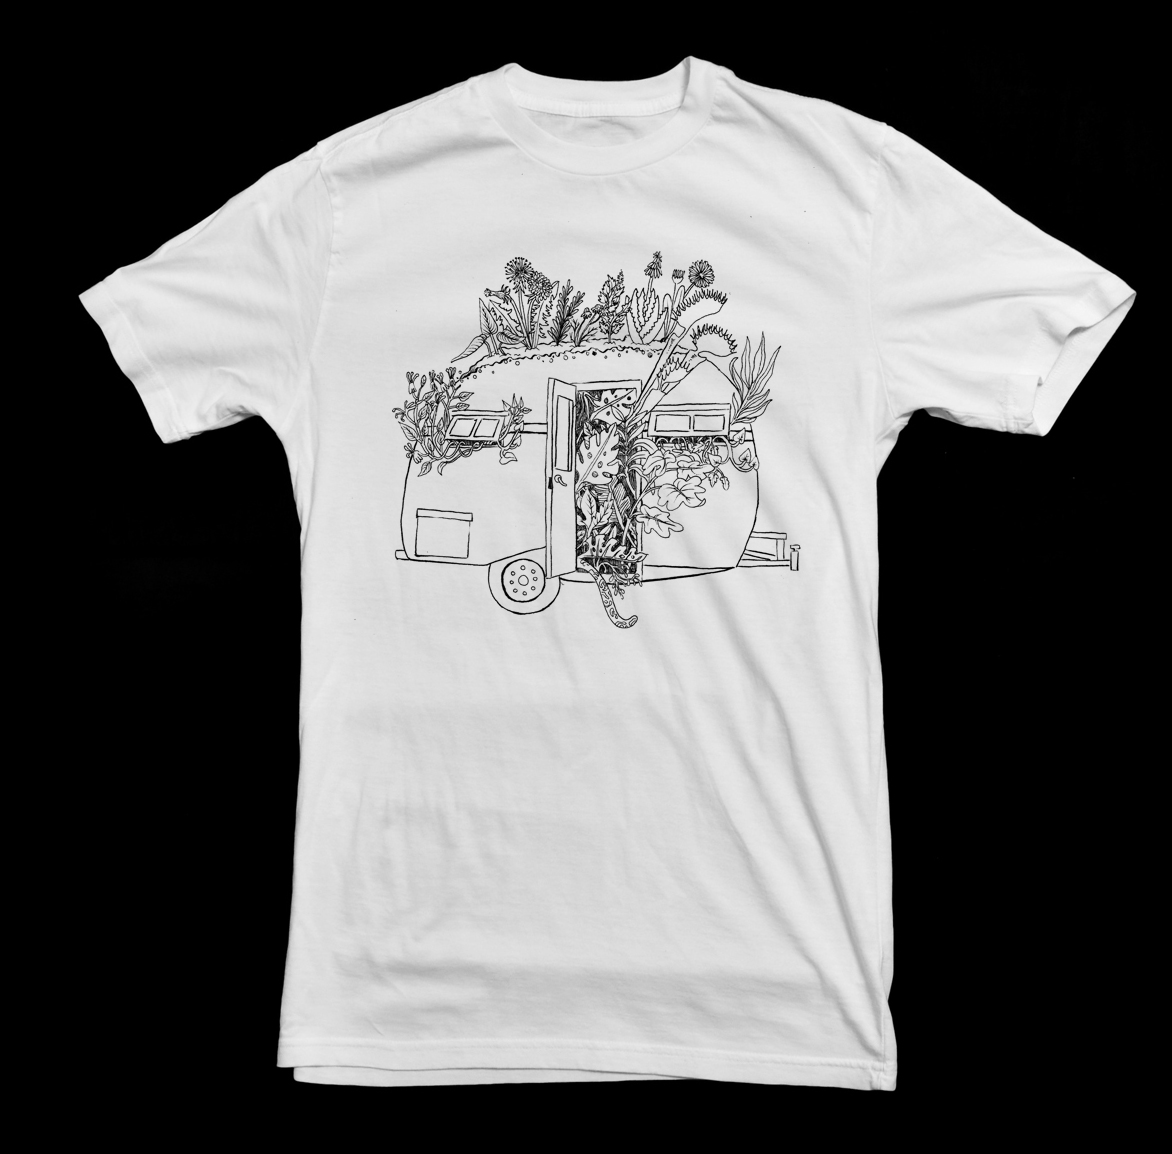 Nomad gardens t-shirt